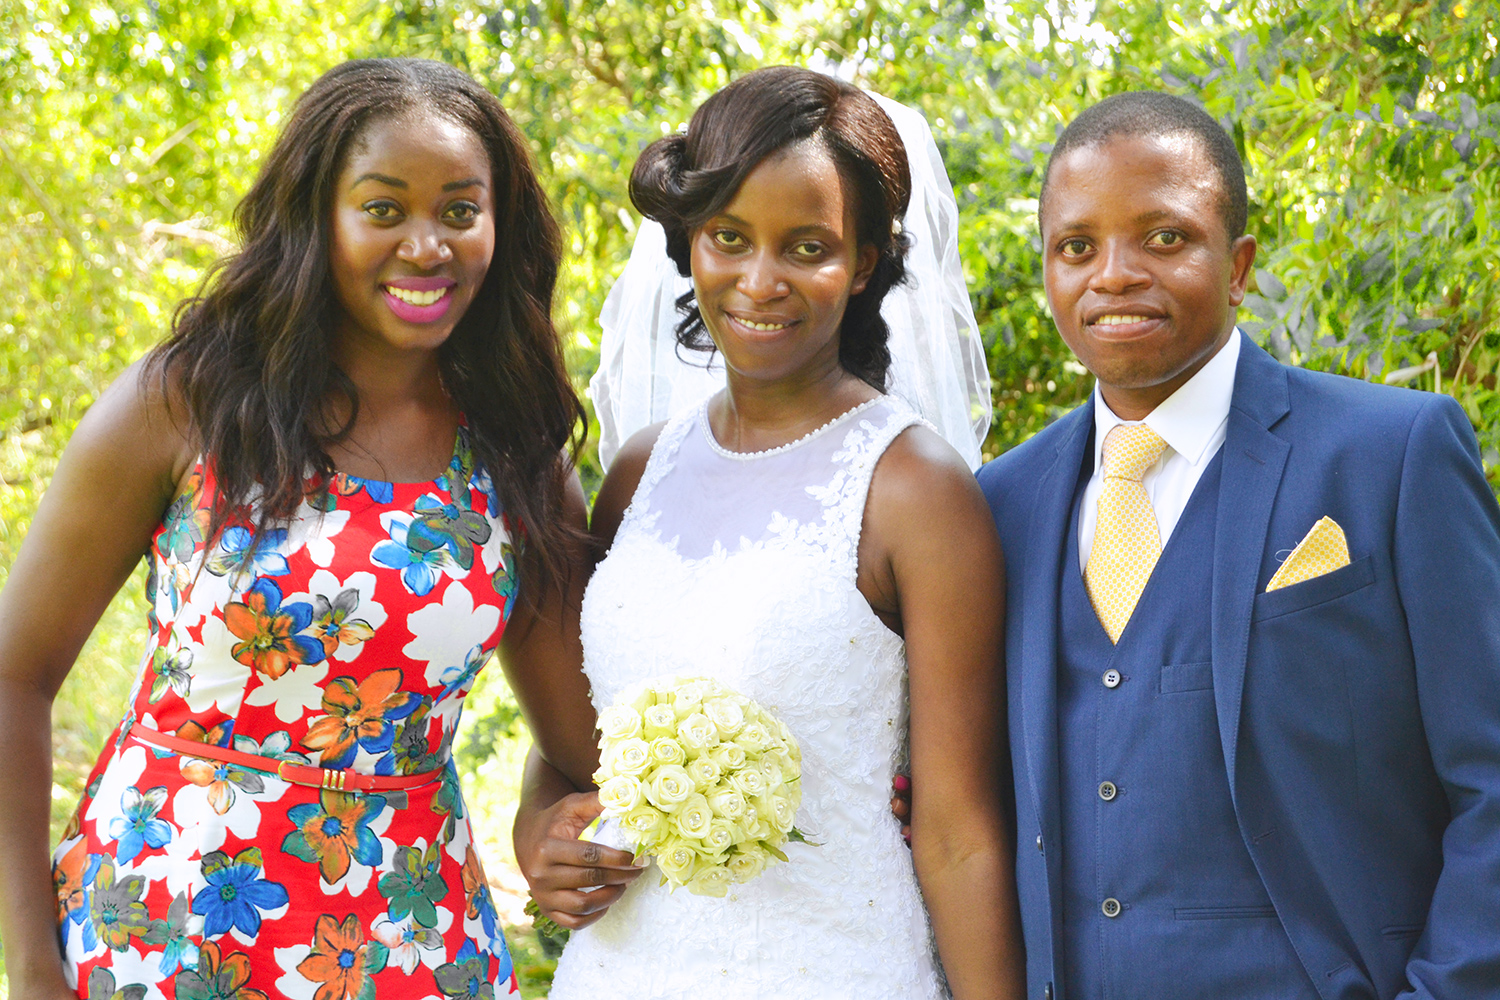 SWAZILAND: MY COUSINS WEDDING